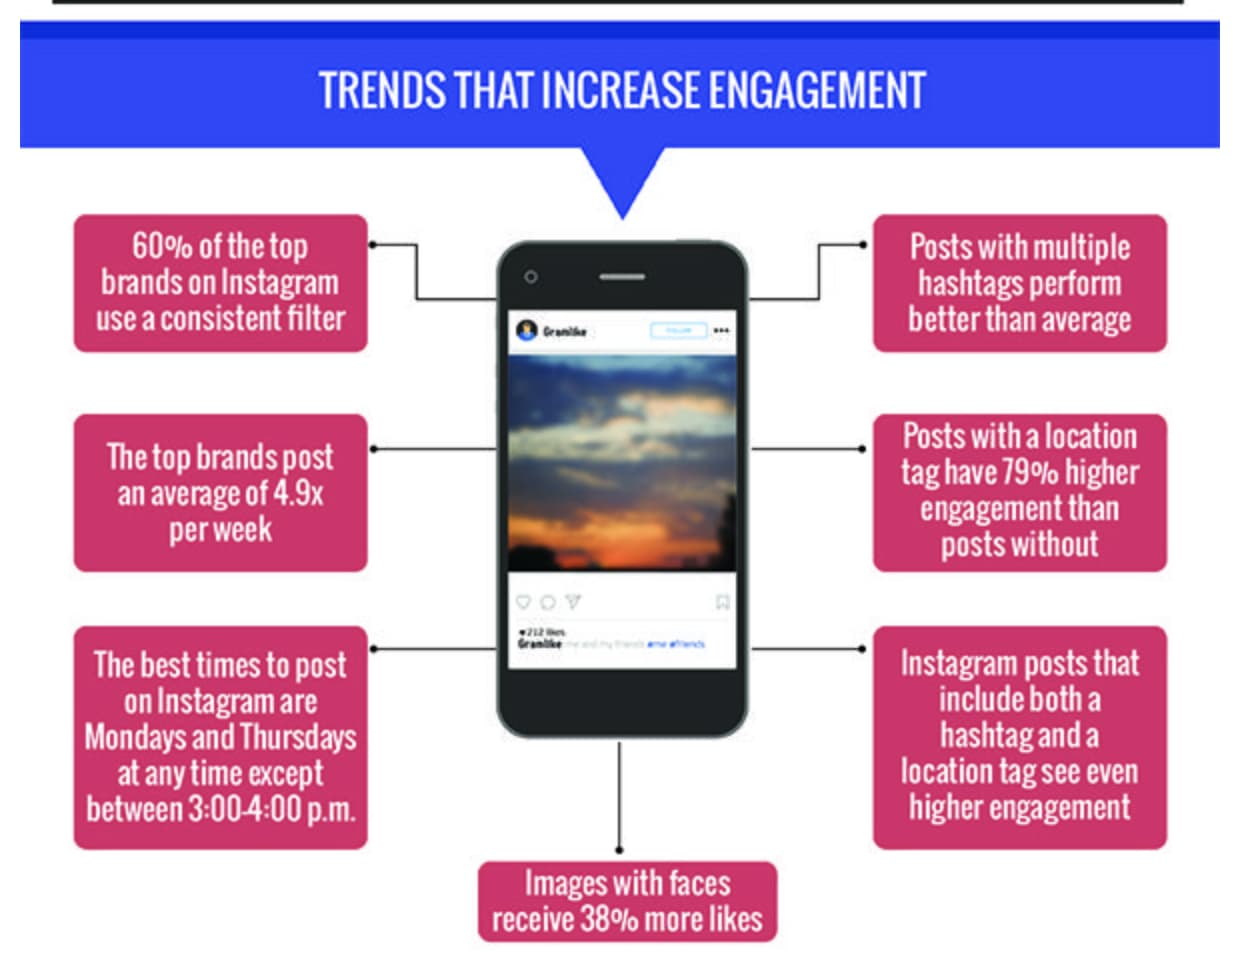 Trends that increase engagement on Instagram